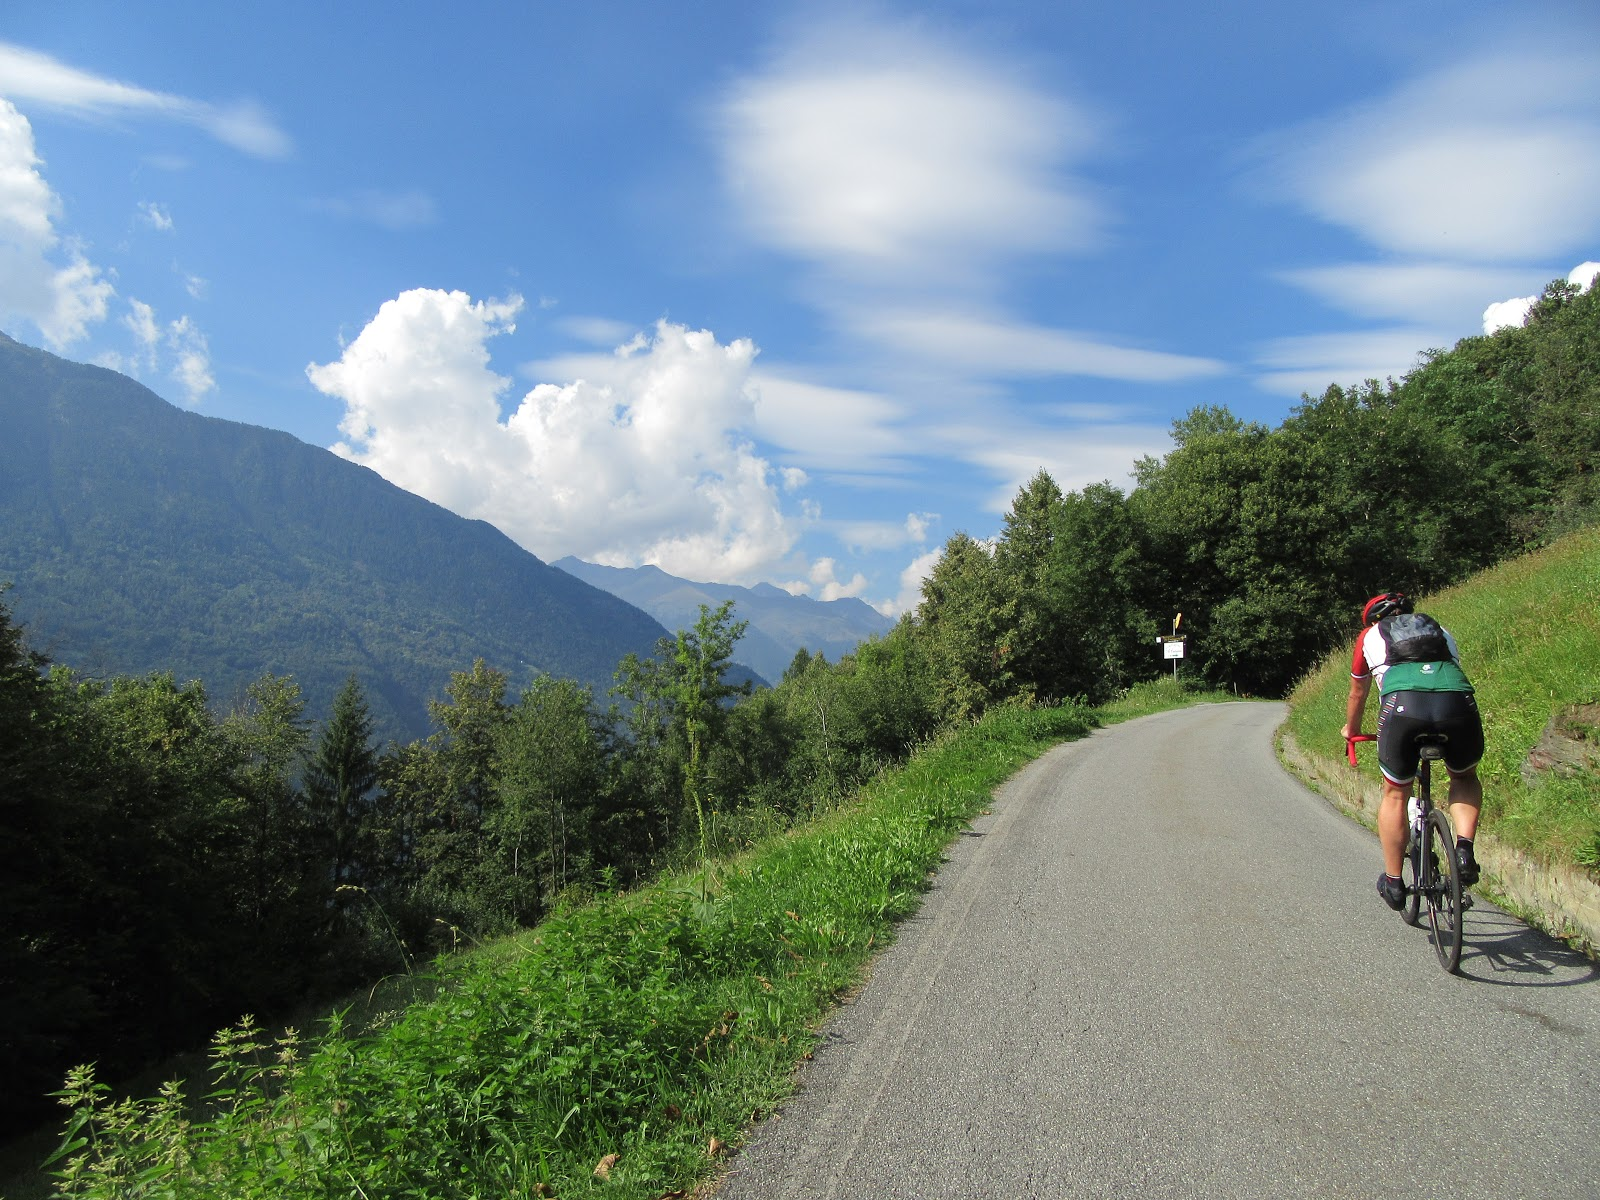 Climbing Passo del Mortirolo from Mazzo di Valtellina by bike - cyclists riding on roadway with mountains and clouds in background